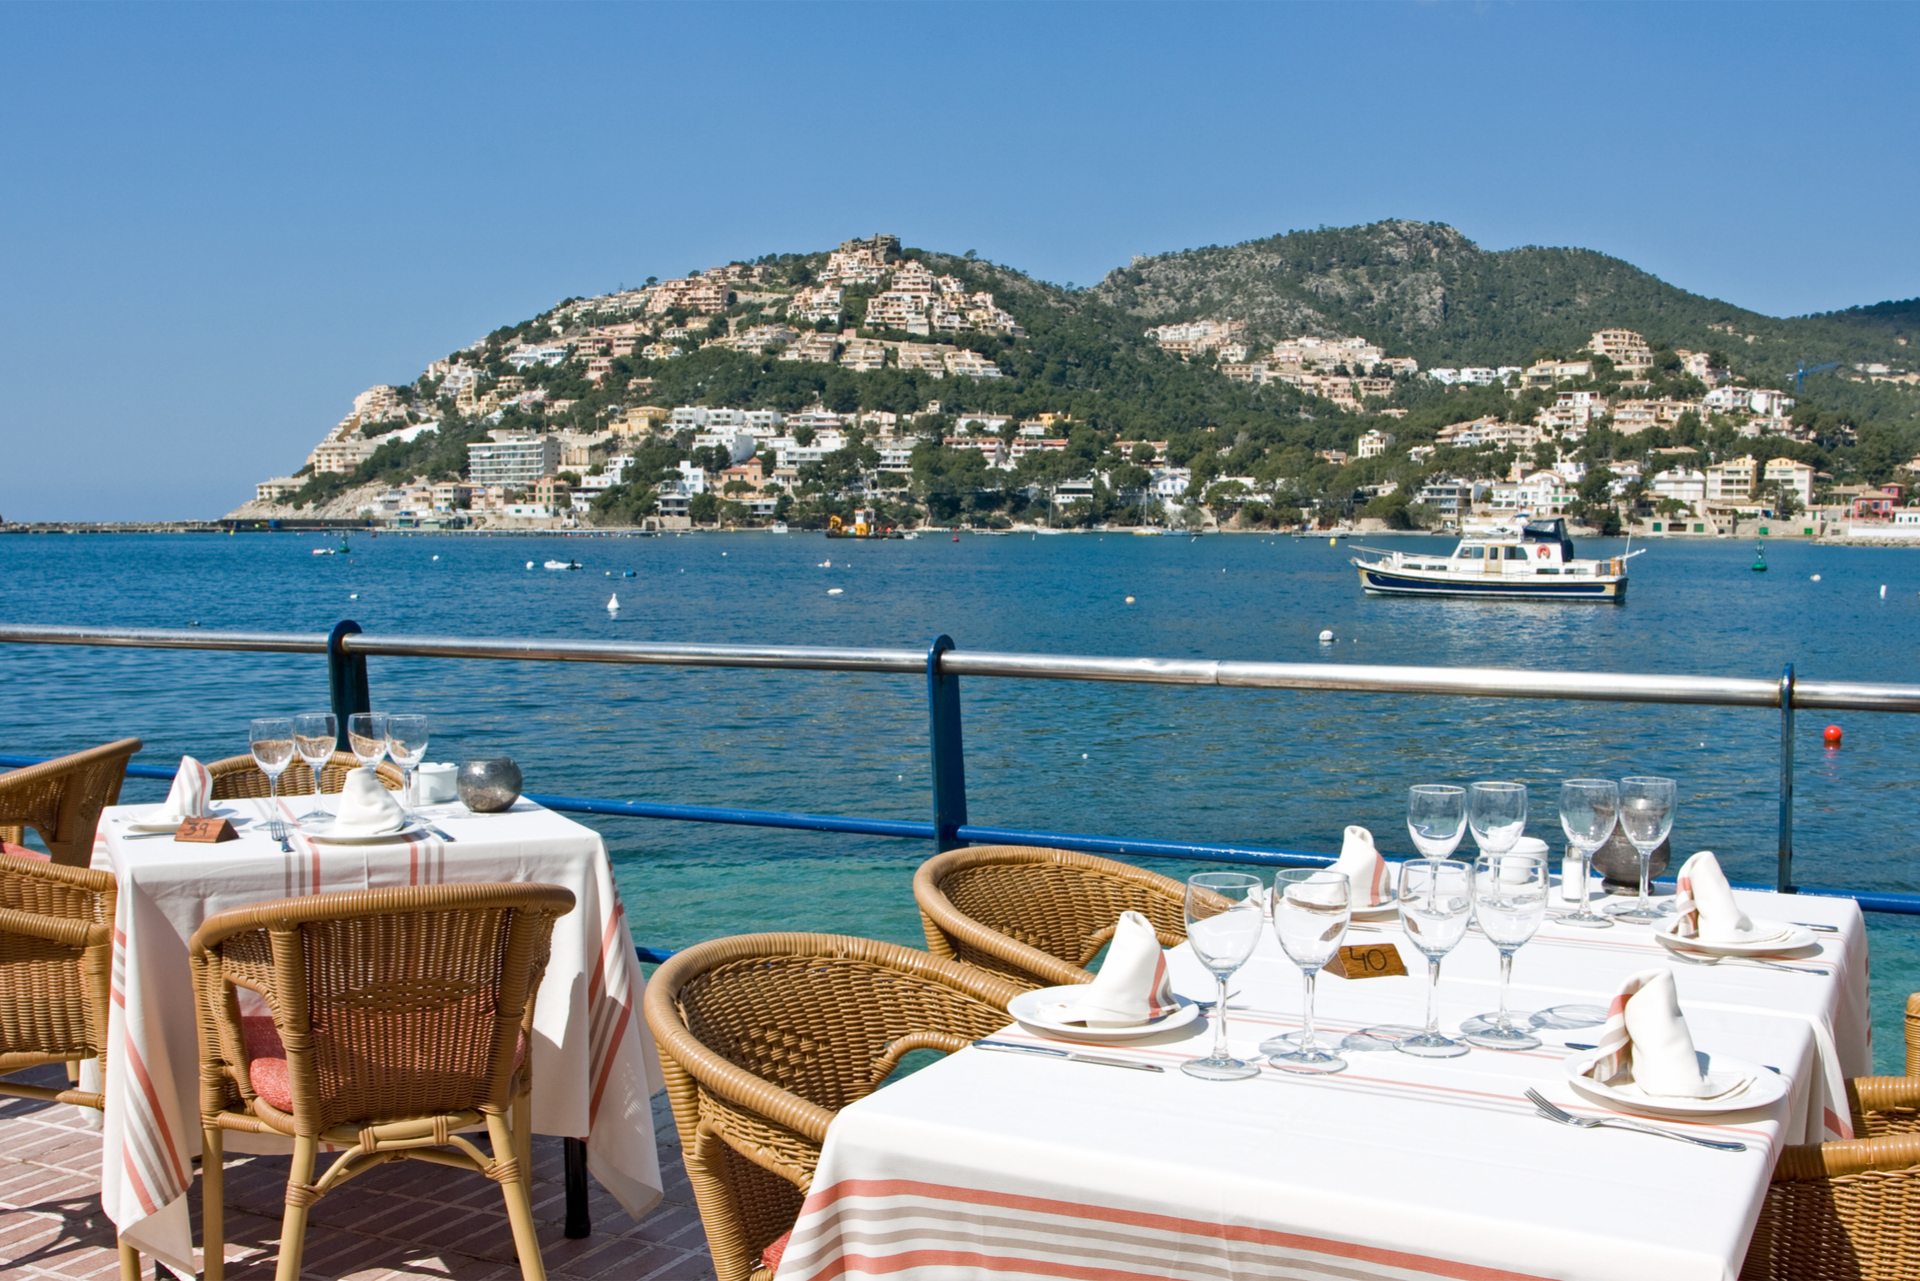 Restaurant With View Foodie Hotspot